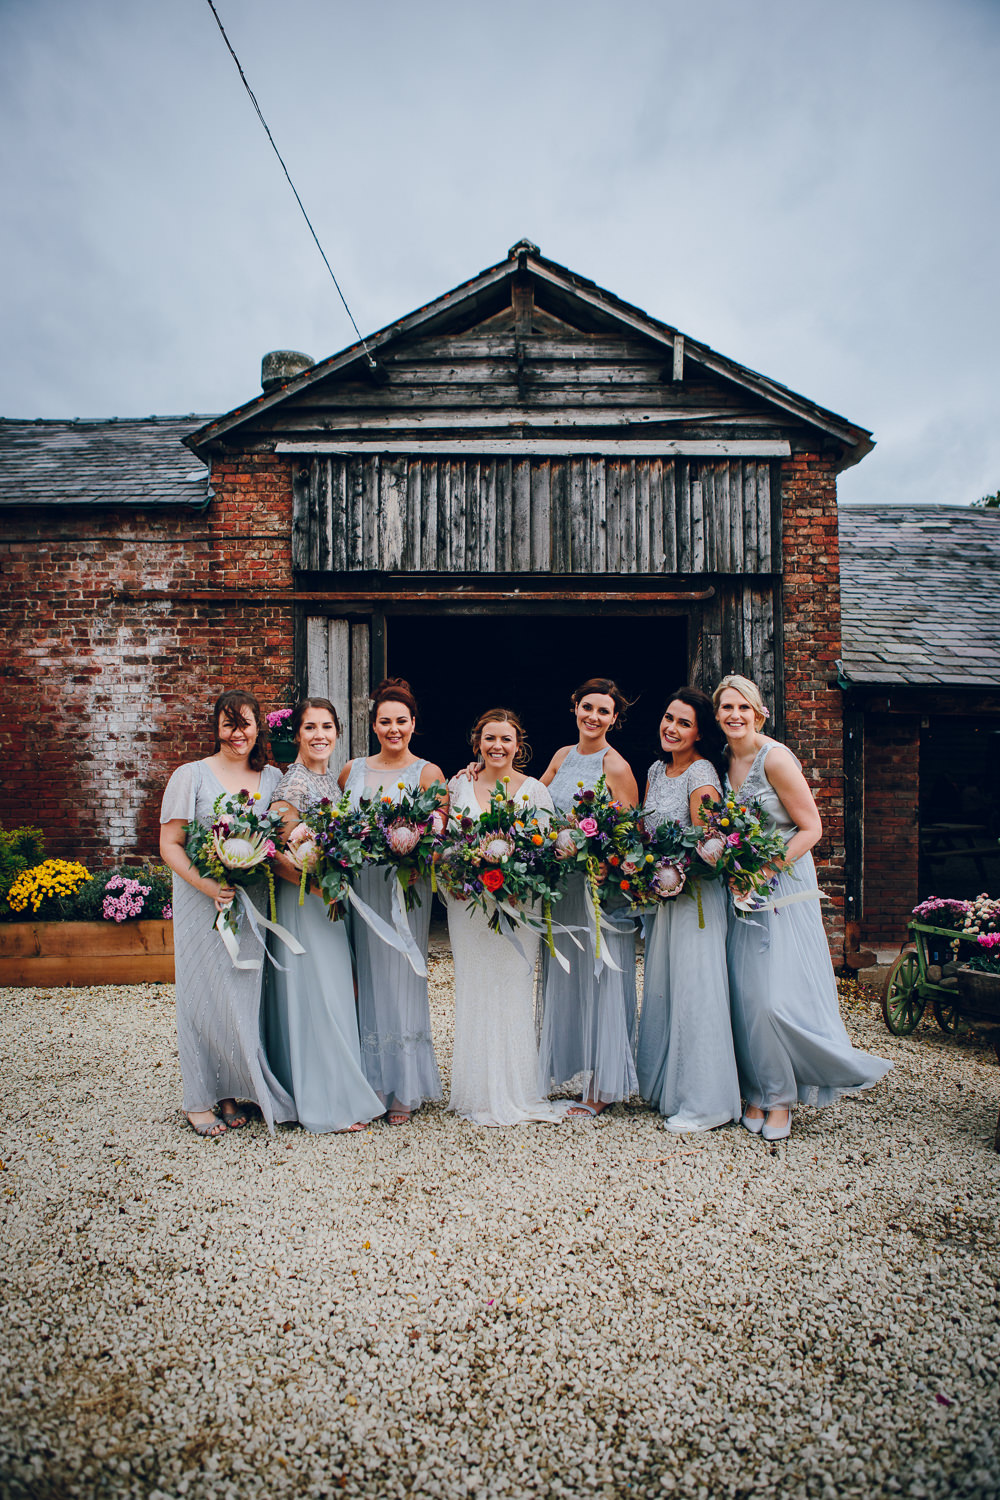 Bride Bridal V Neck Sleeves Beaded Detail Dress Gown Grey Maxi Dress Bridesmaids Tatton Wedding Stock Farm Barn Amy B Photography